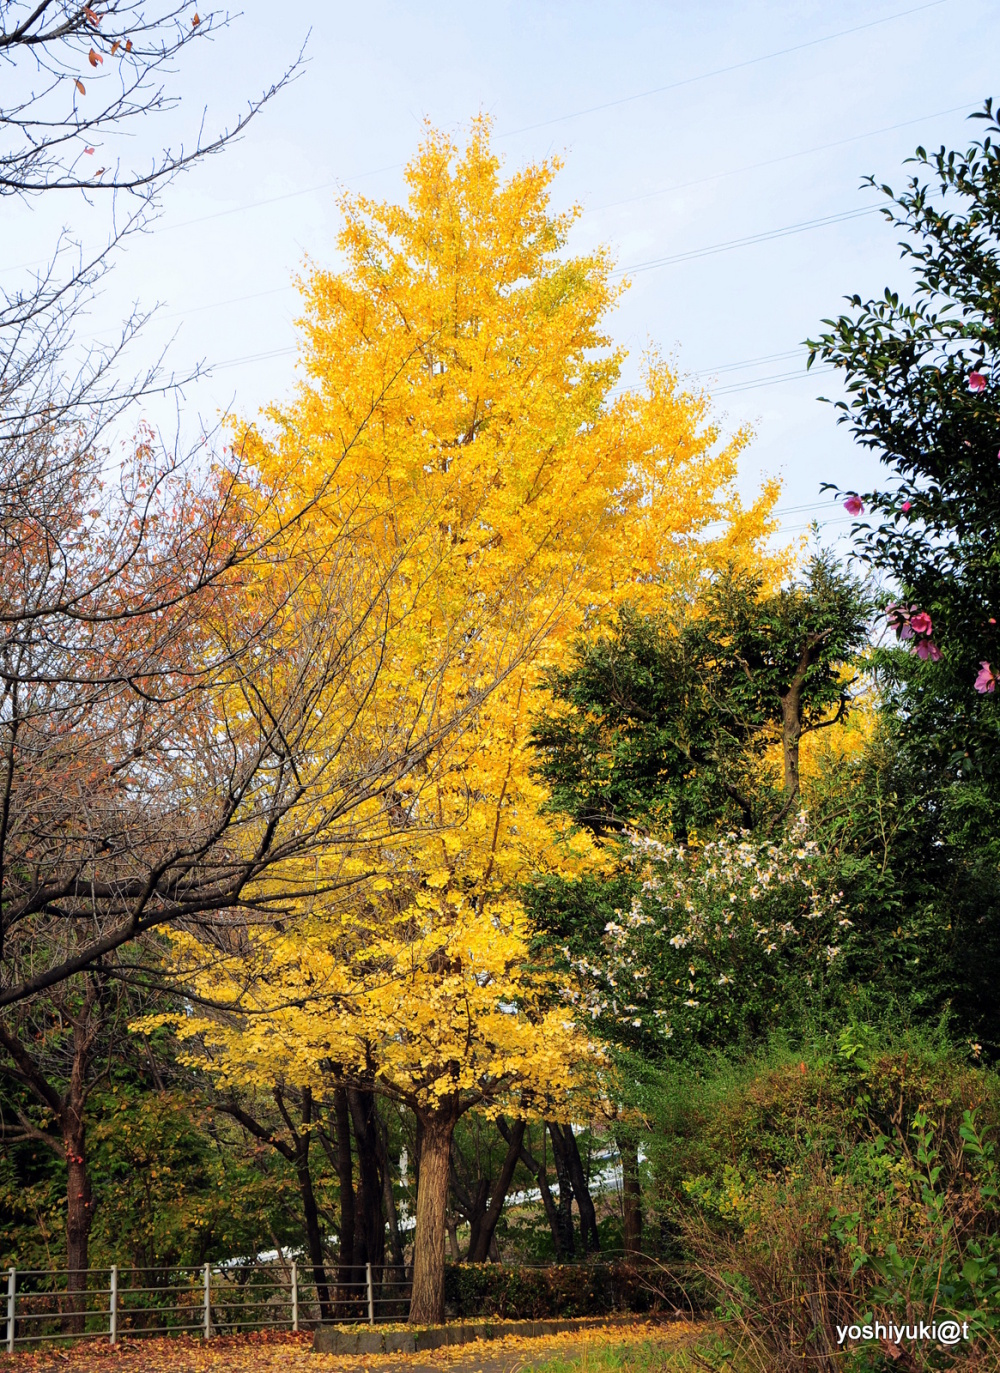 The trees wearing gold leaves - gingko trees